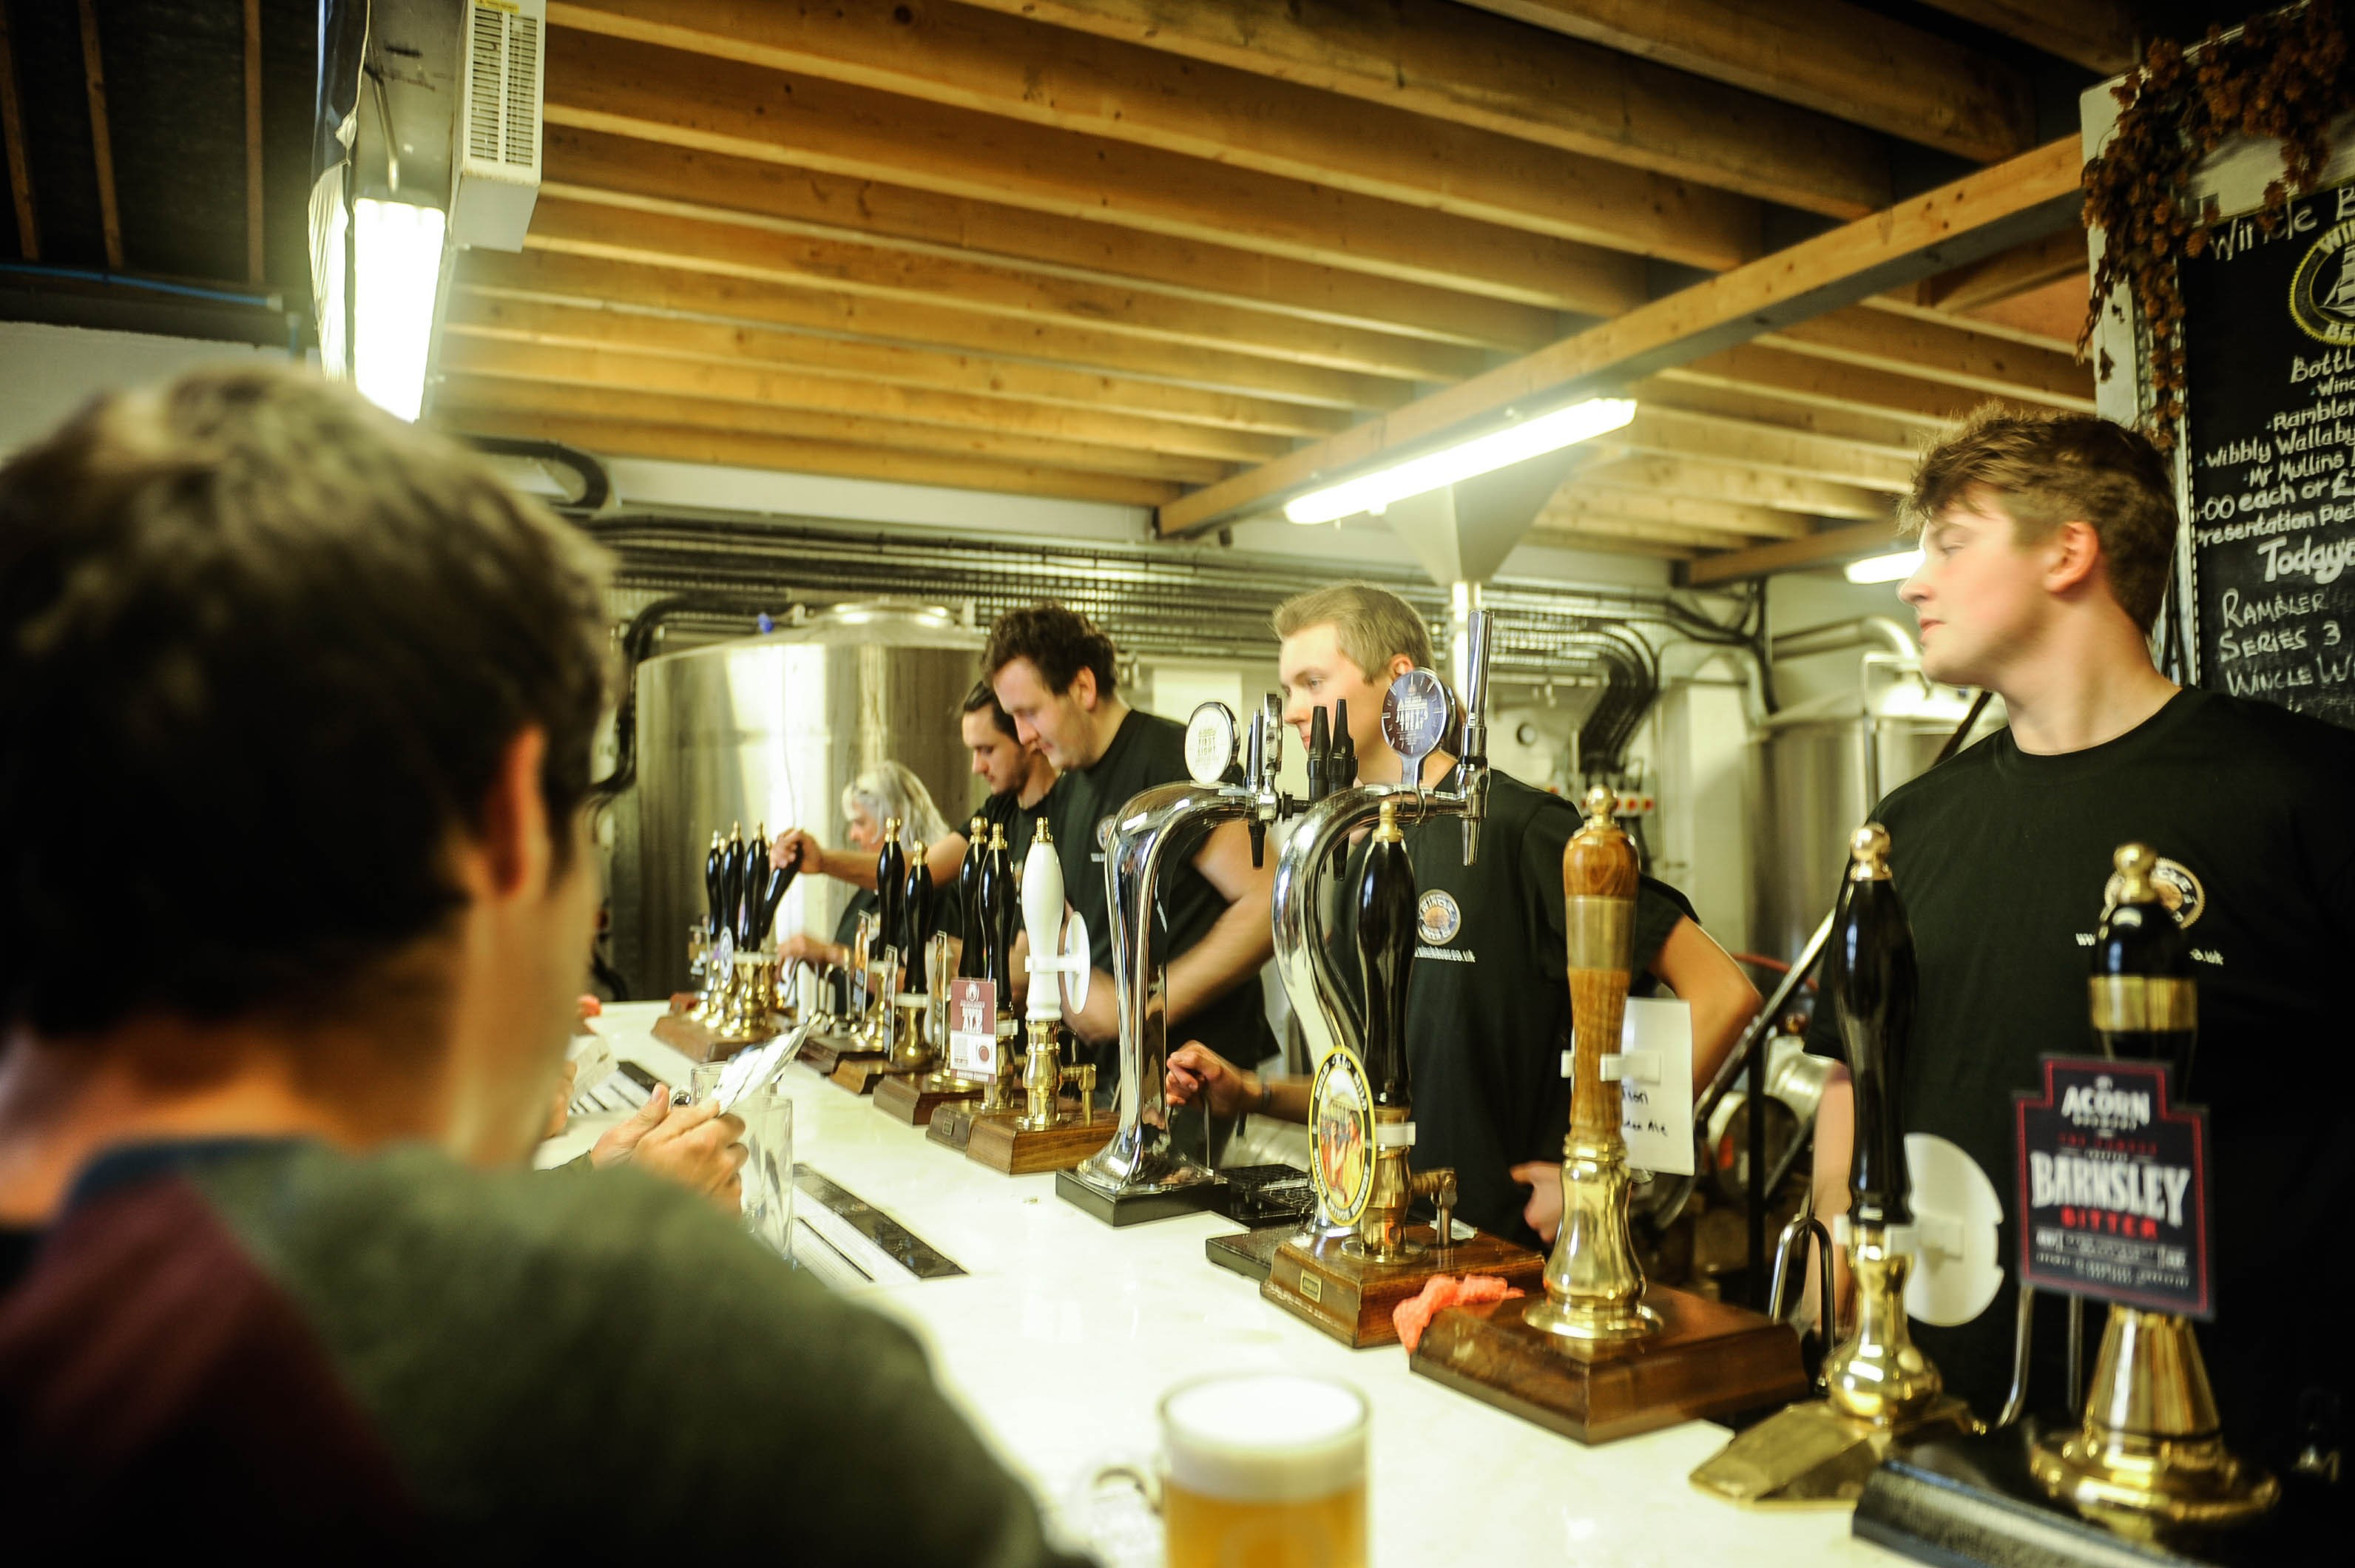 Festival bar in the brewery